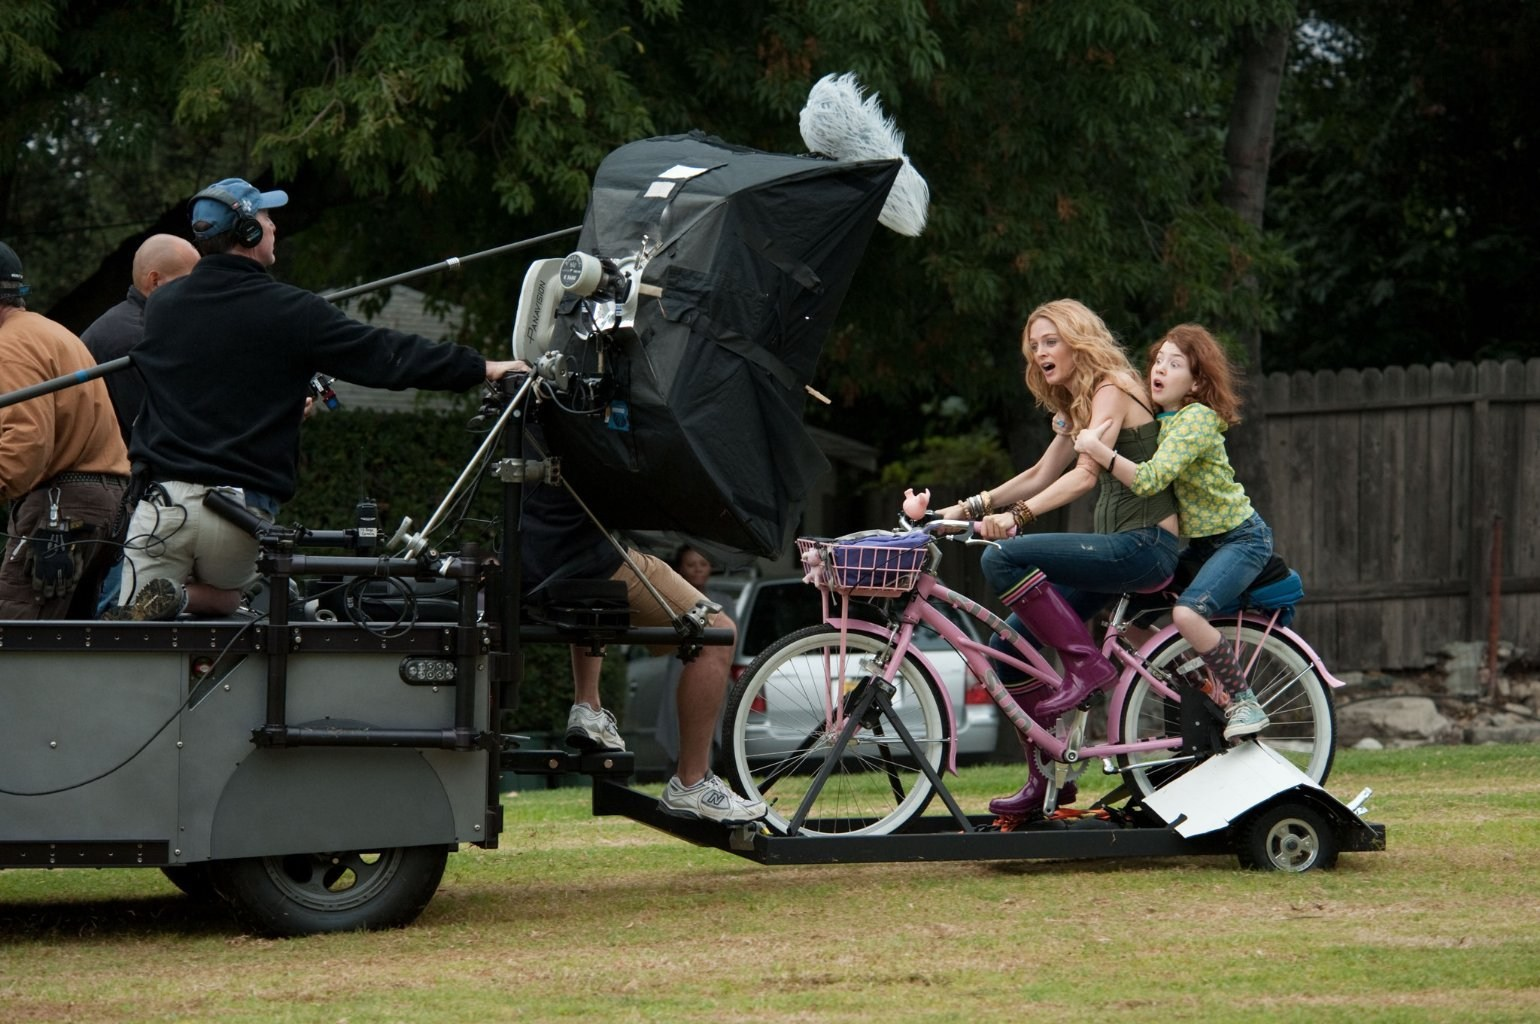 Filming Judy Moody and the Not Bummer Summer (2011) Behind the Scenes